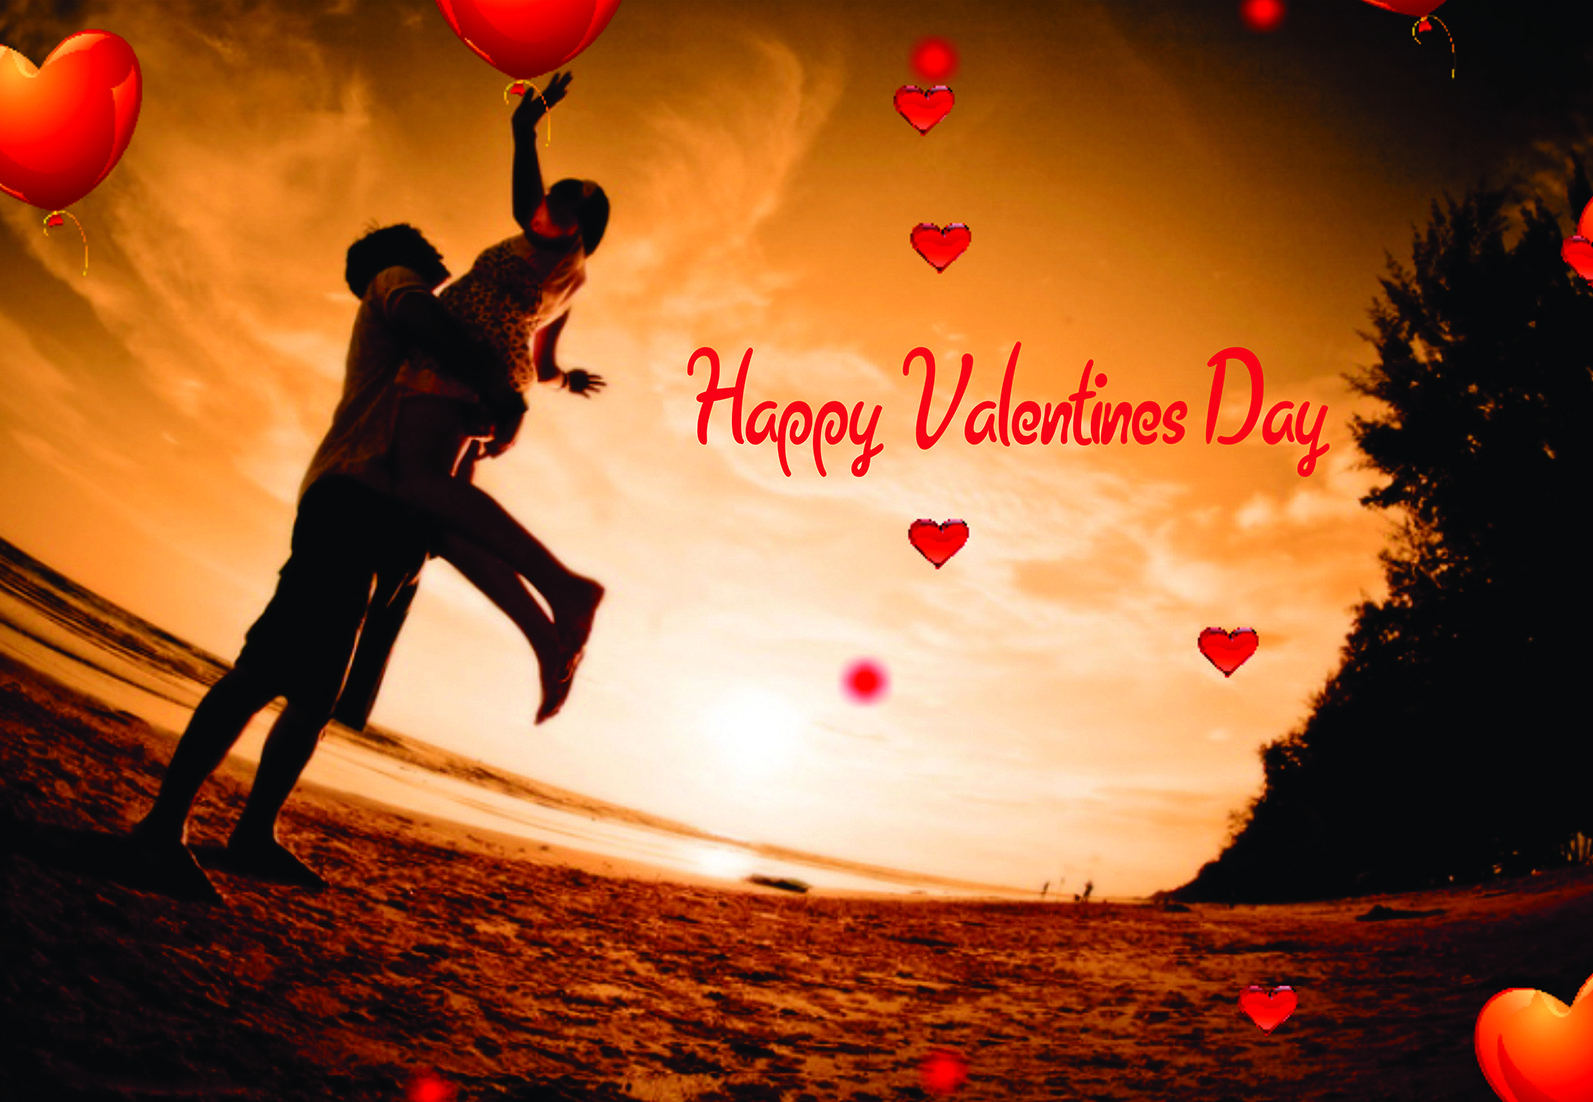 cute Love Wallpaper For Mobile : Valentine s Day HD Wallpaper